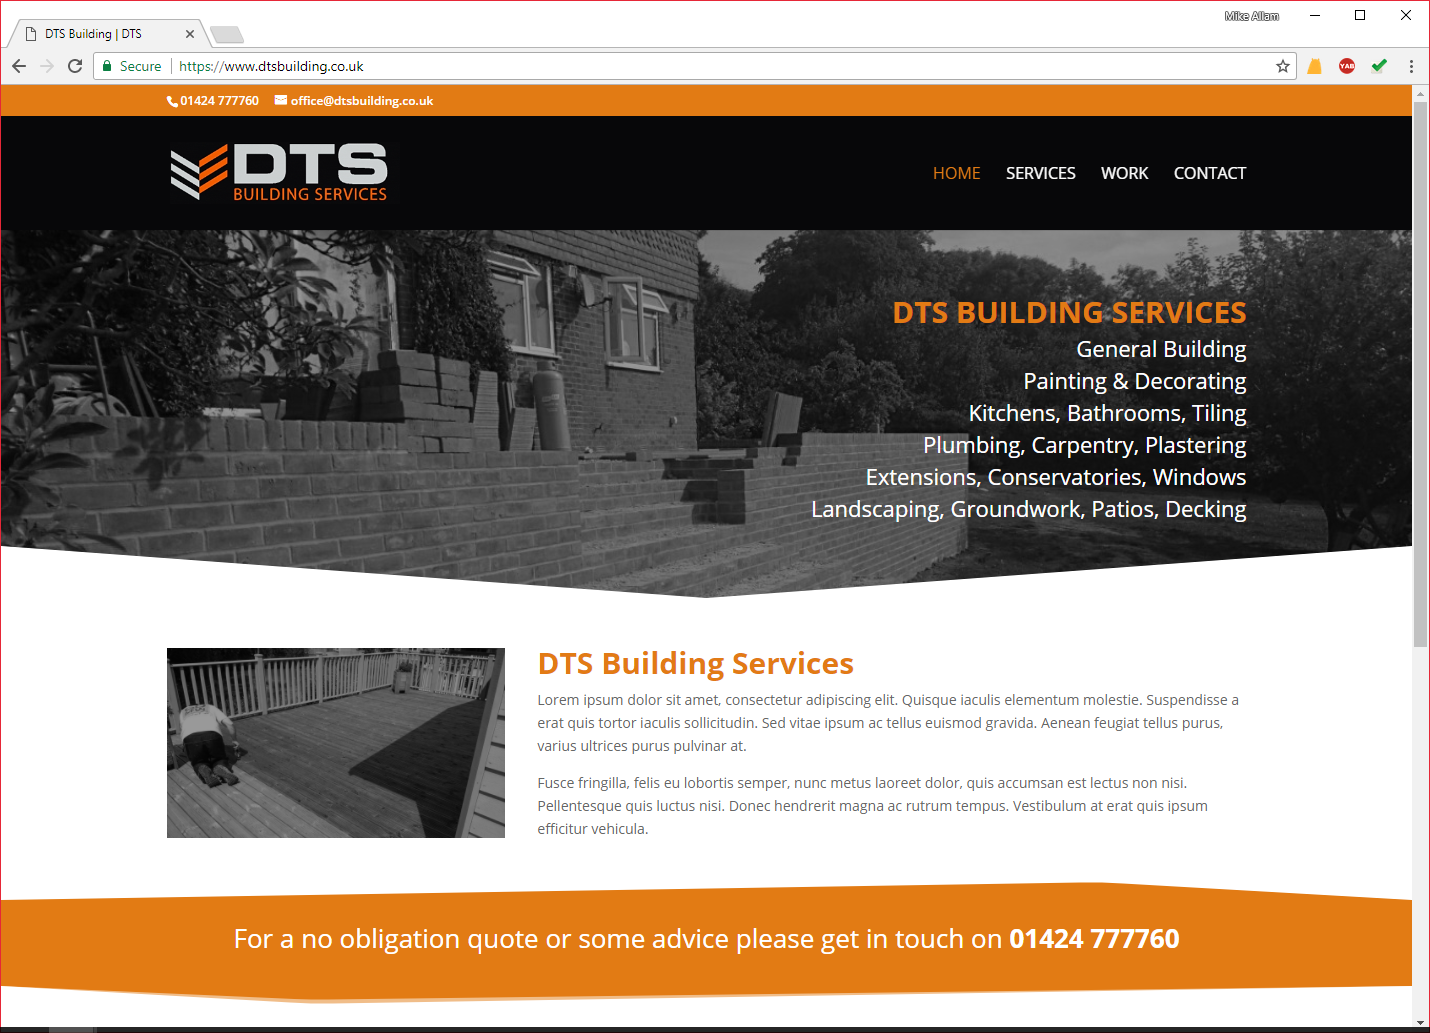 DTS Building Services Sussex